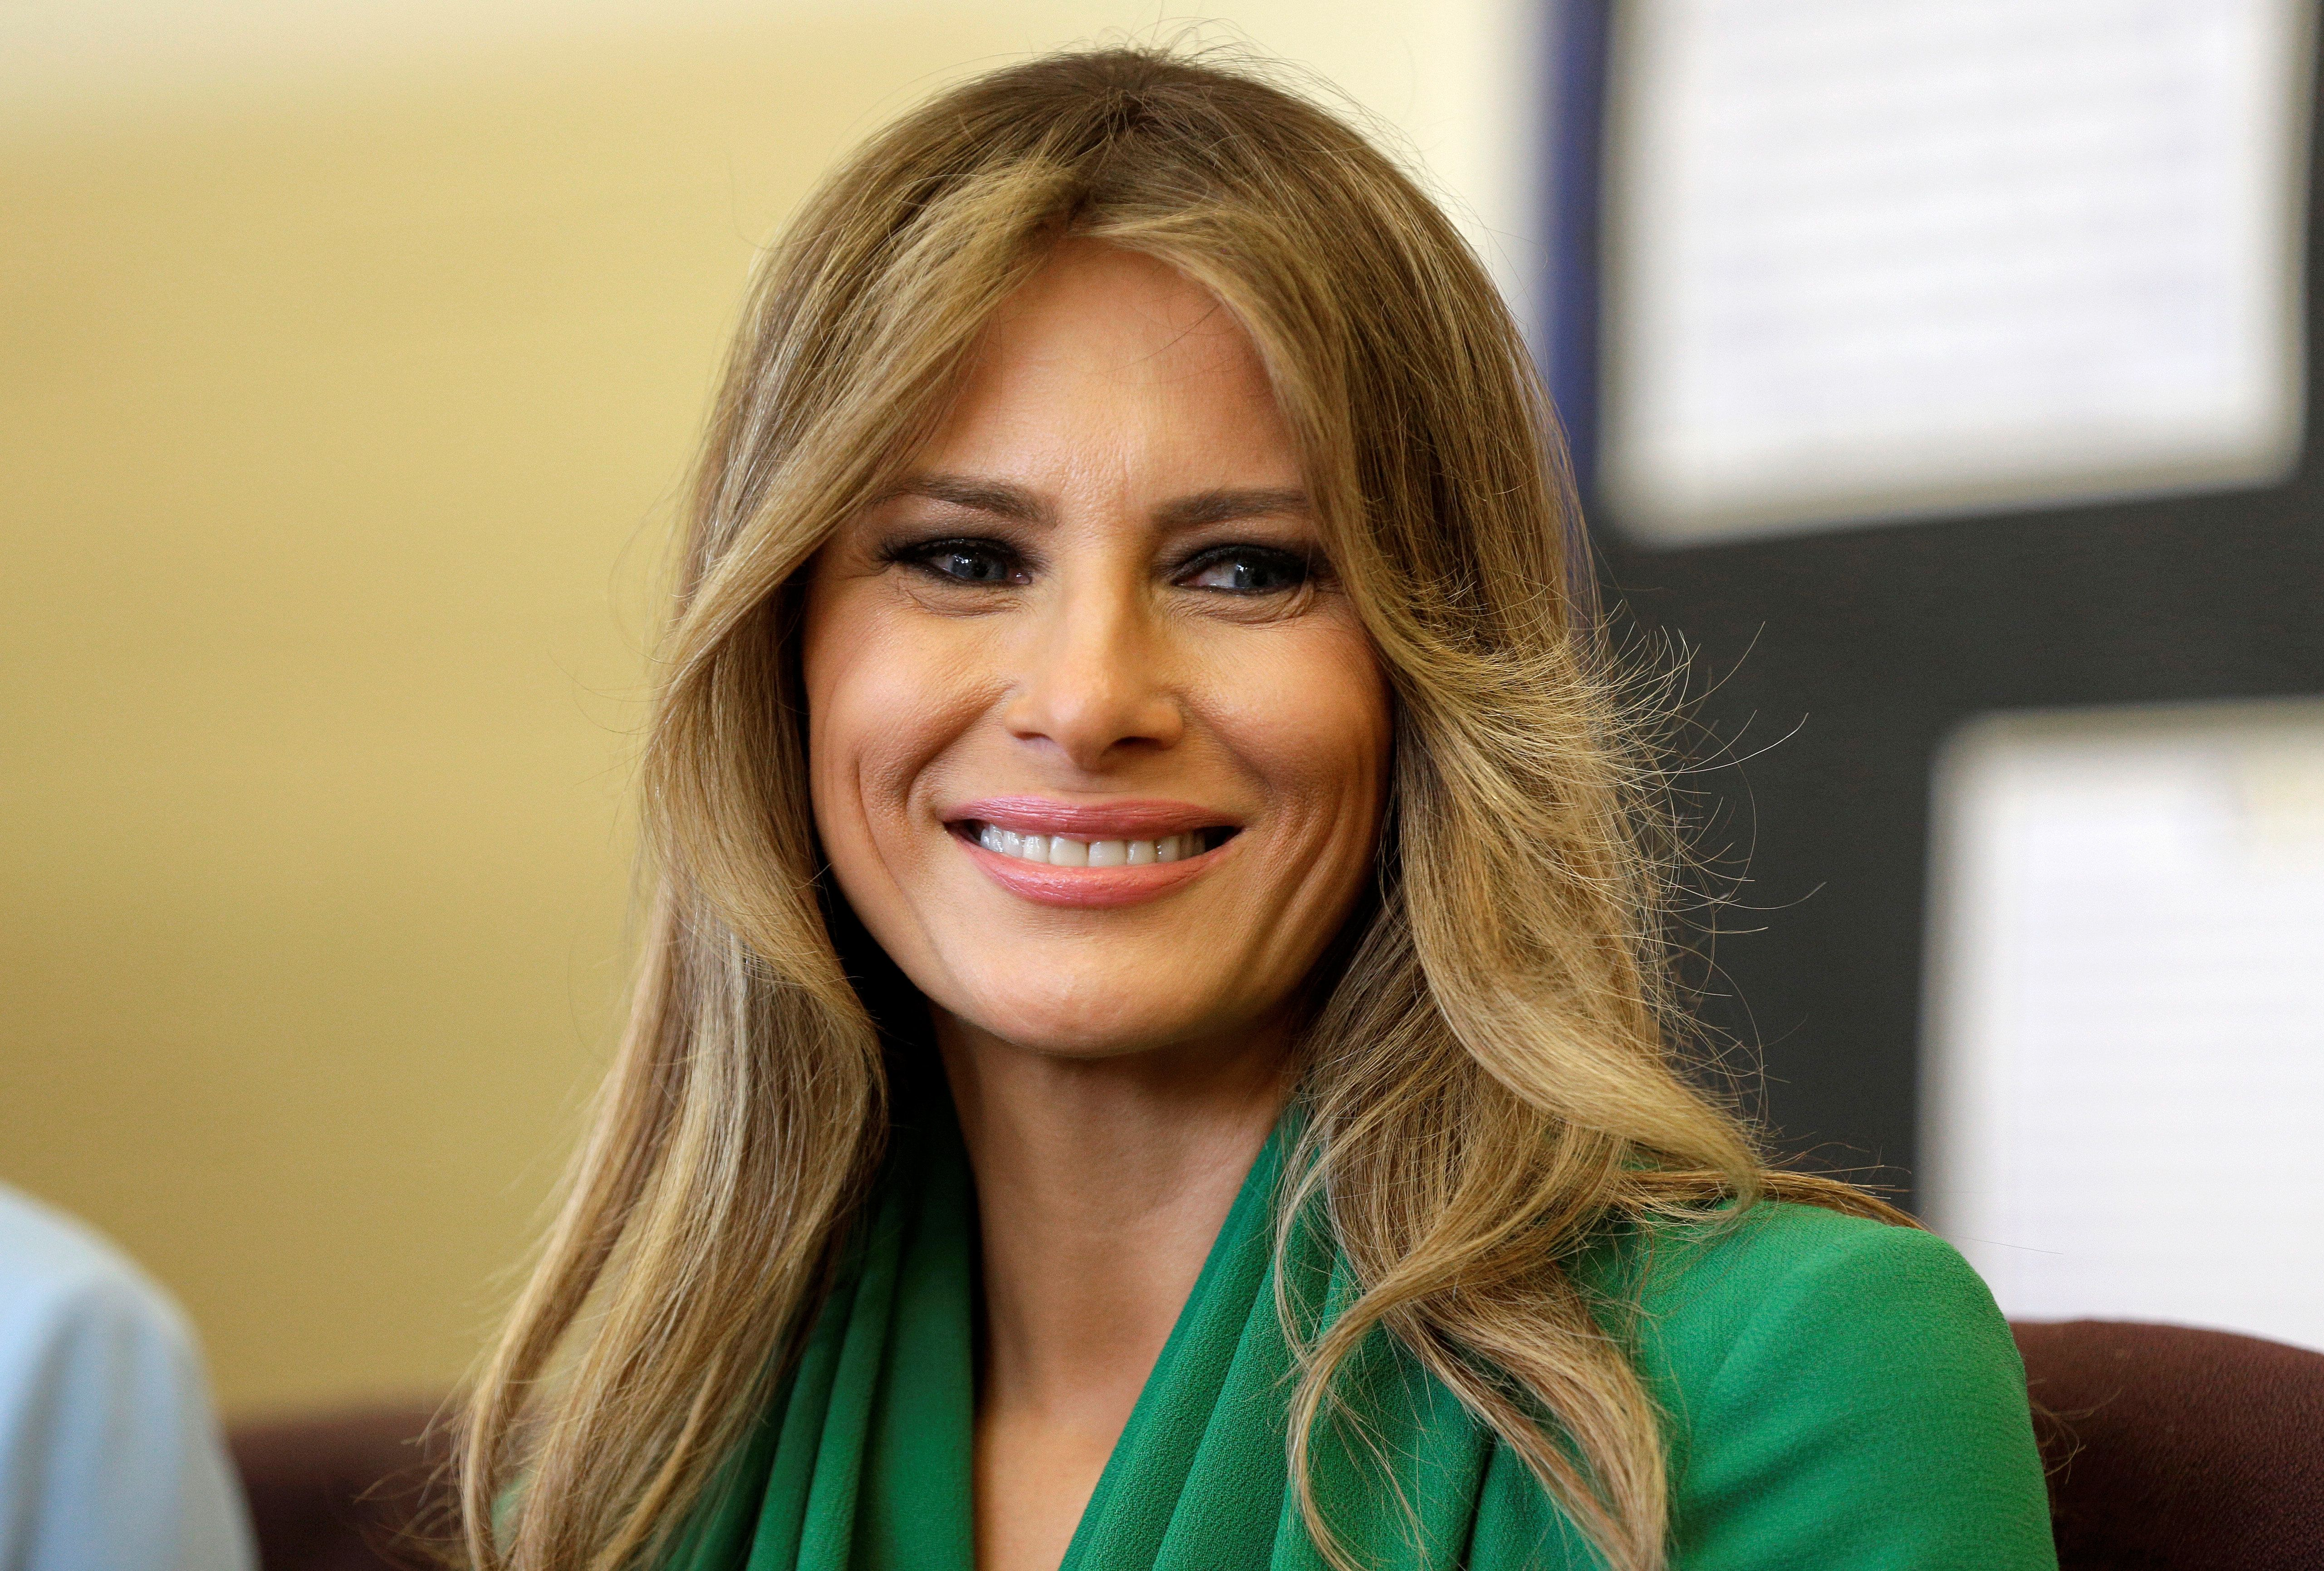 U.S. first lady Melania Trump smiles during a visit to Excel Academy Public Charter School in Washington, U.S., April 5, 2017. REUTERS/Joshua Roberts